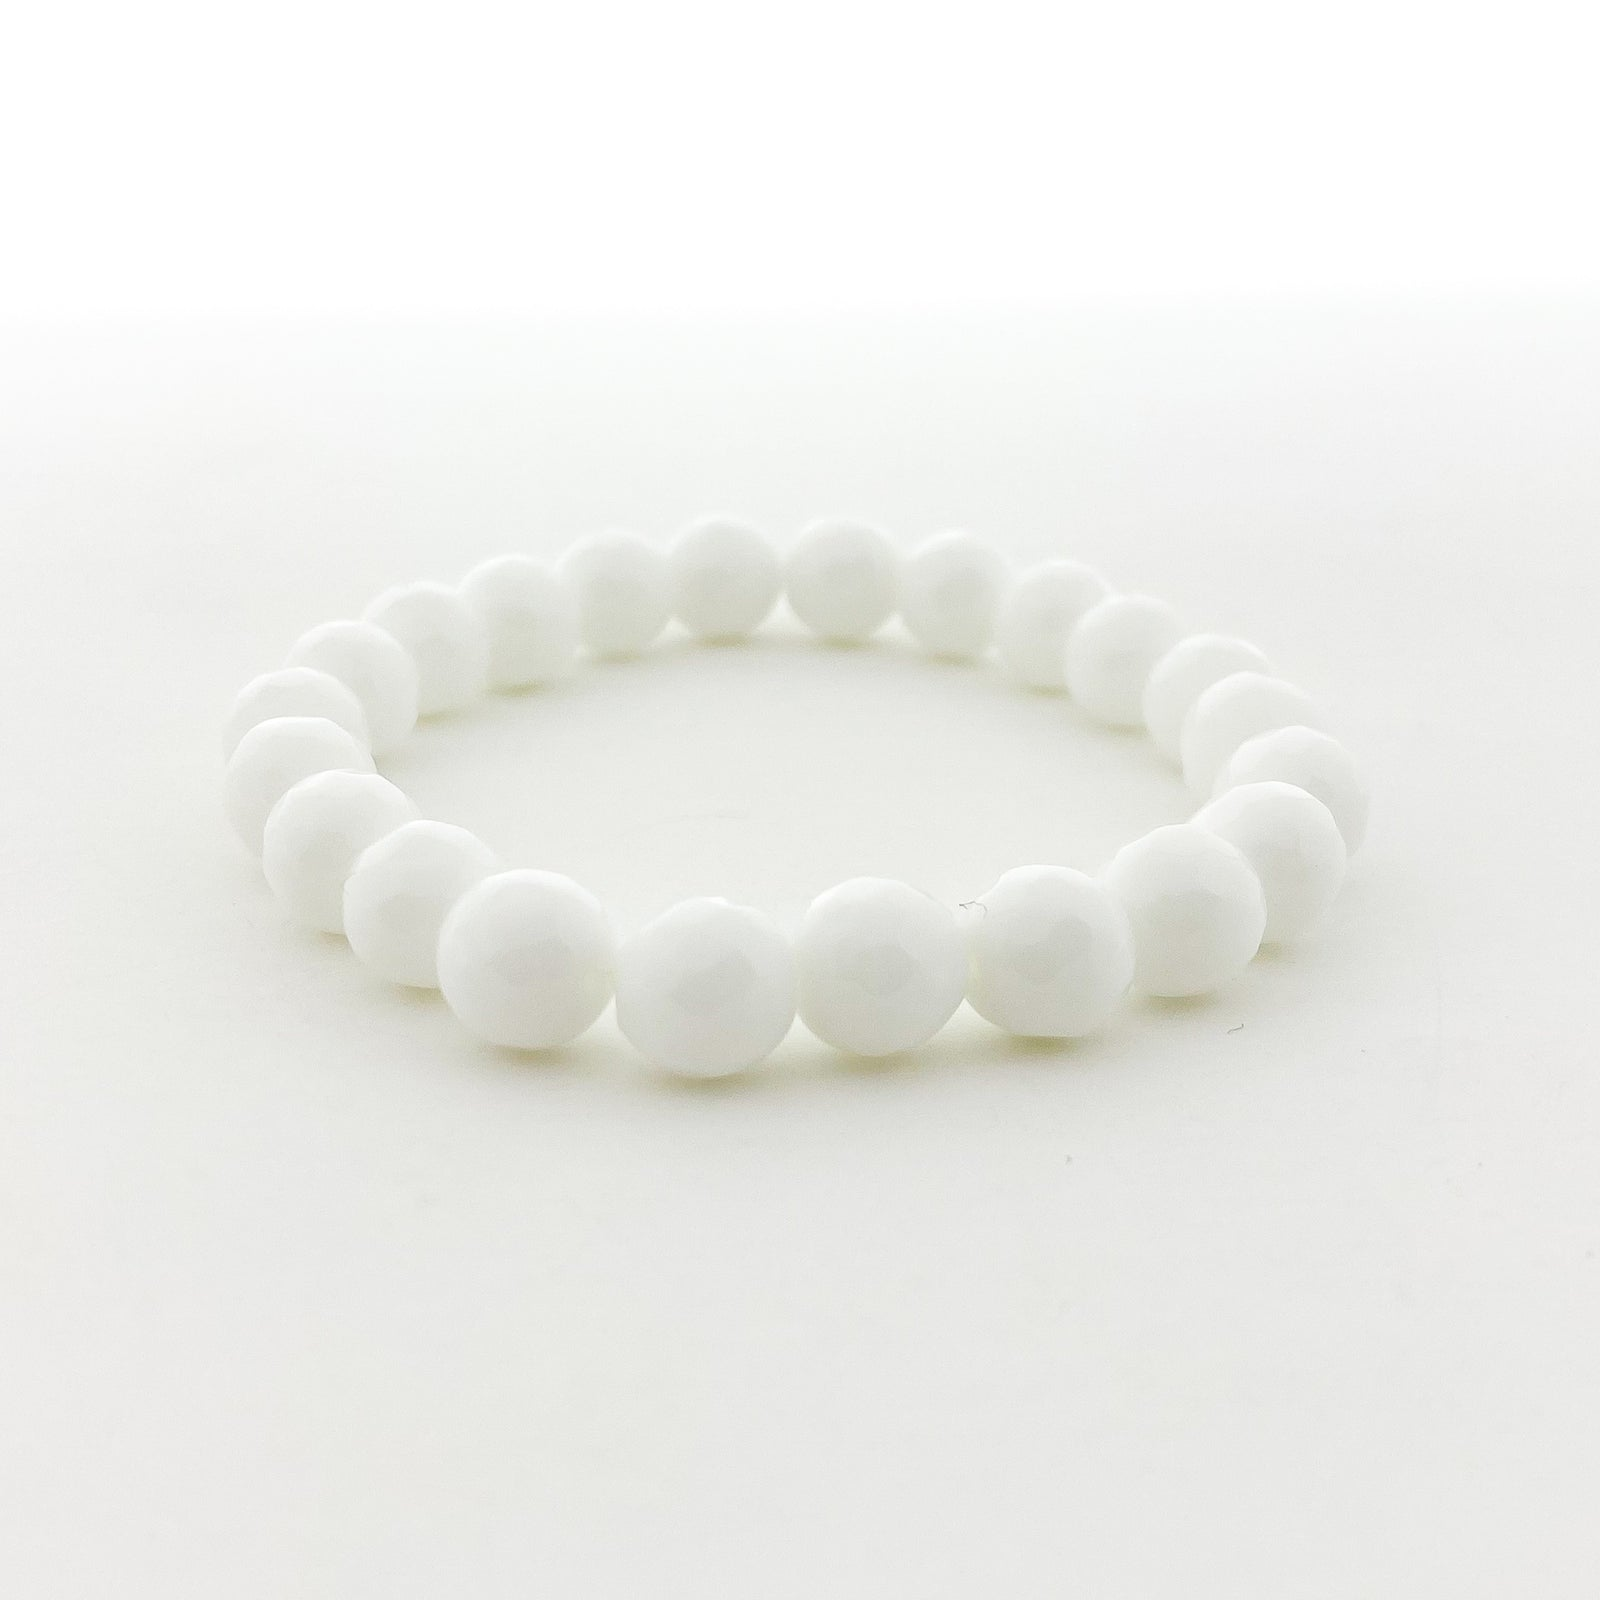 CREAM AGATE FACETED BRACELETS | 8MM | STYLE OPTIONS